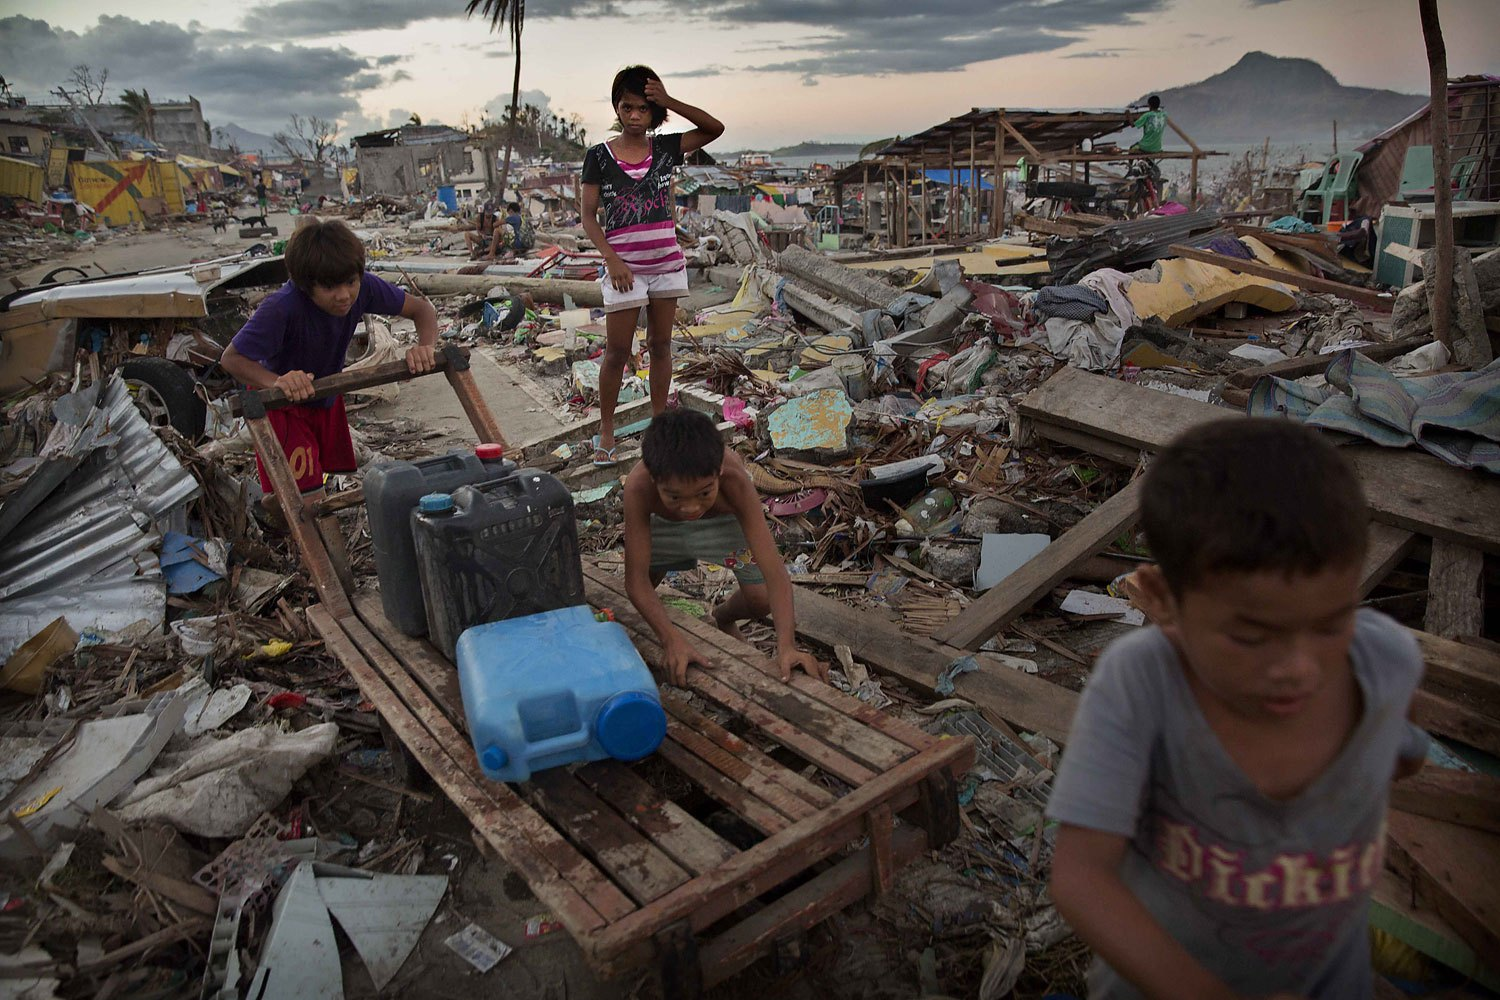 Young residents push a cart as they collect water in an area destroyed in the aftermath of Typhoon Haiyan on November 18, 2013 in Tacloban, Philippines.